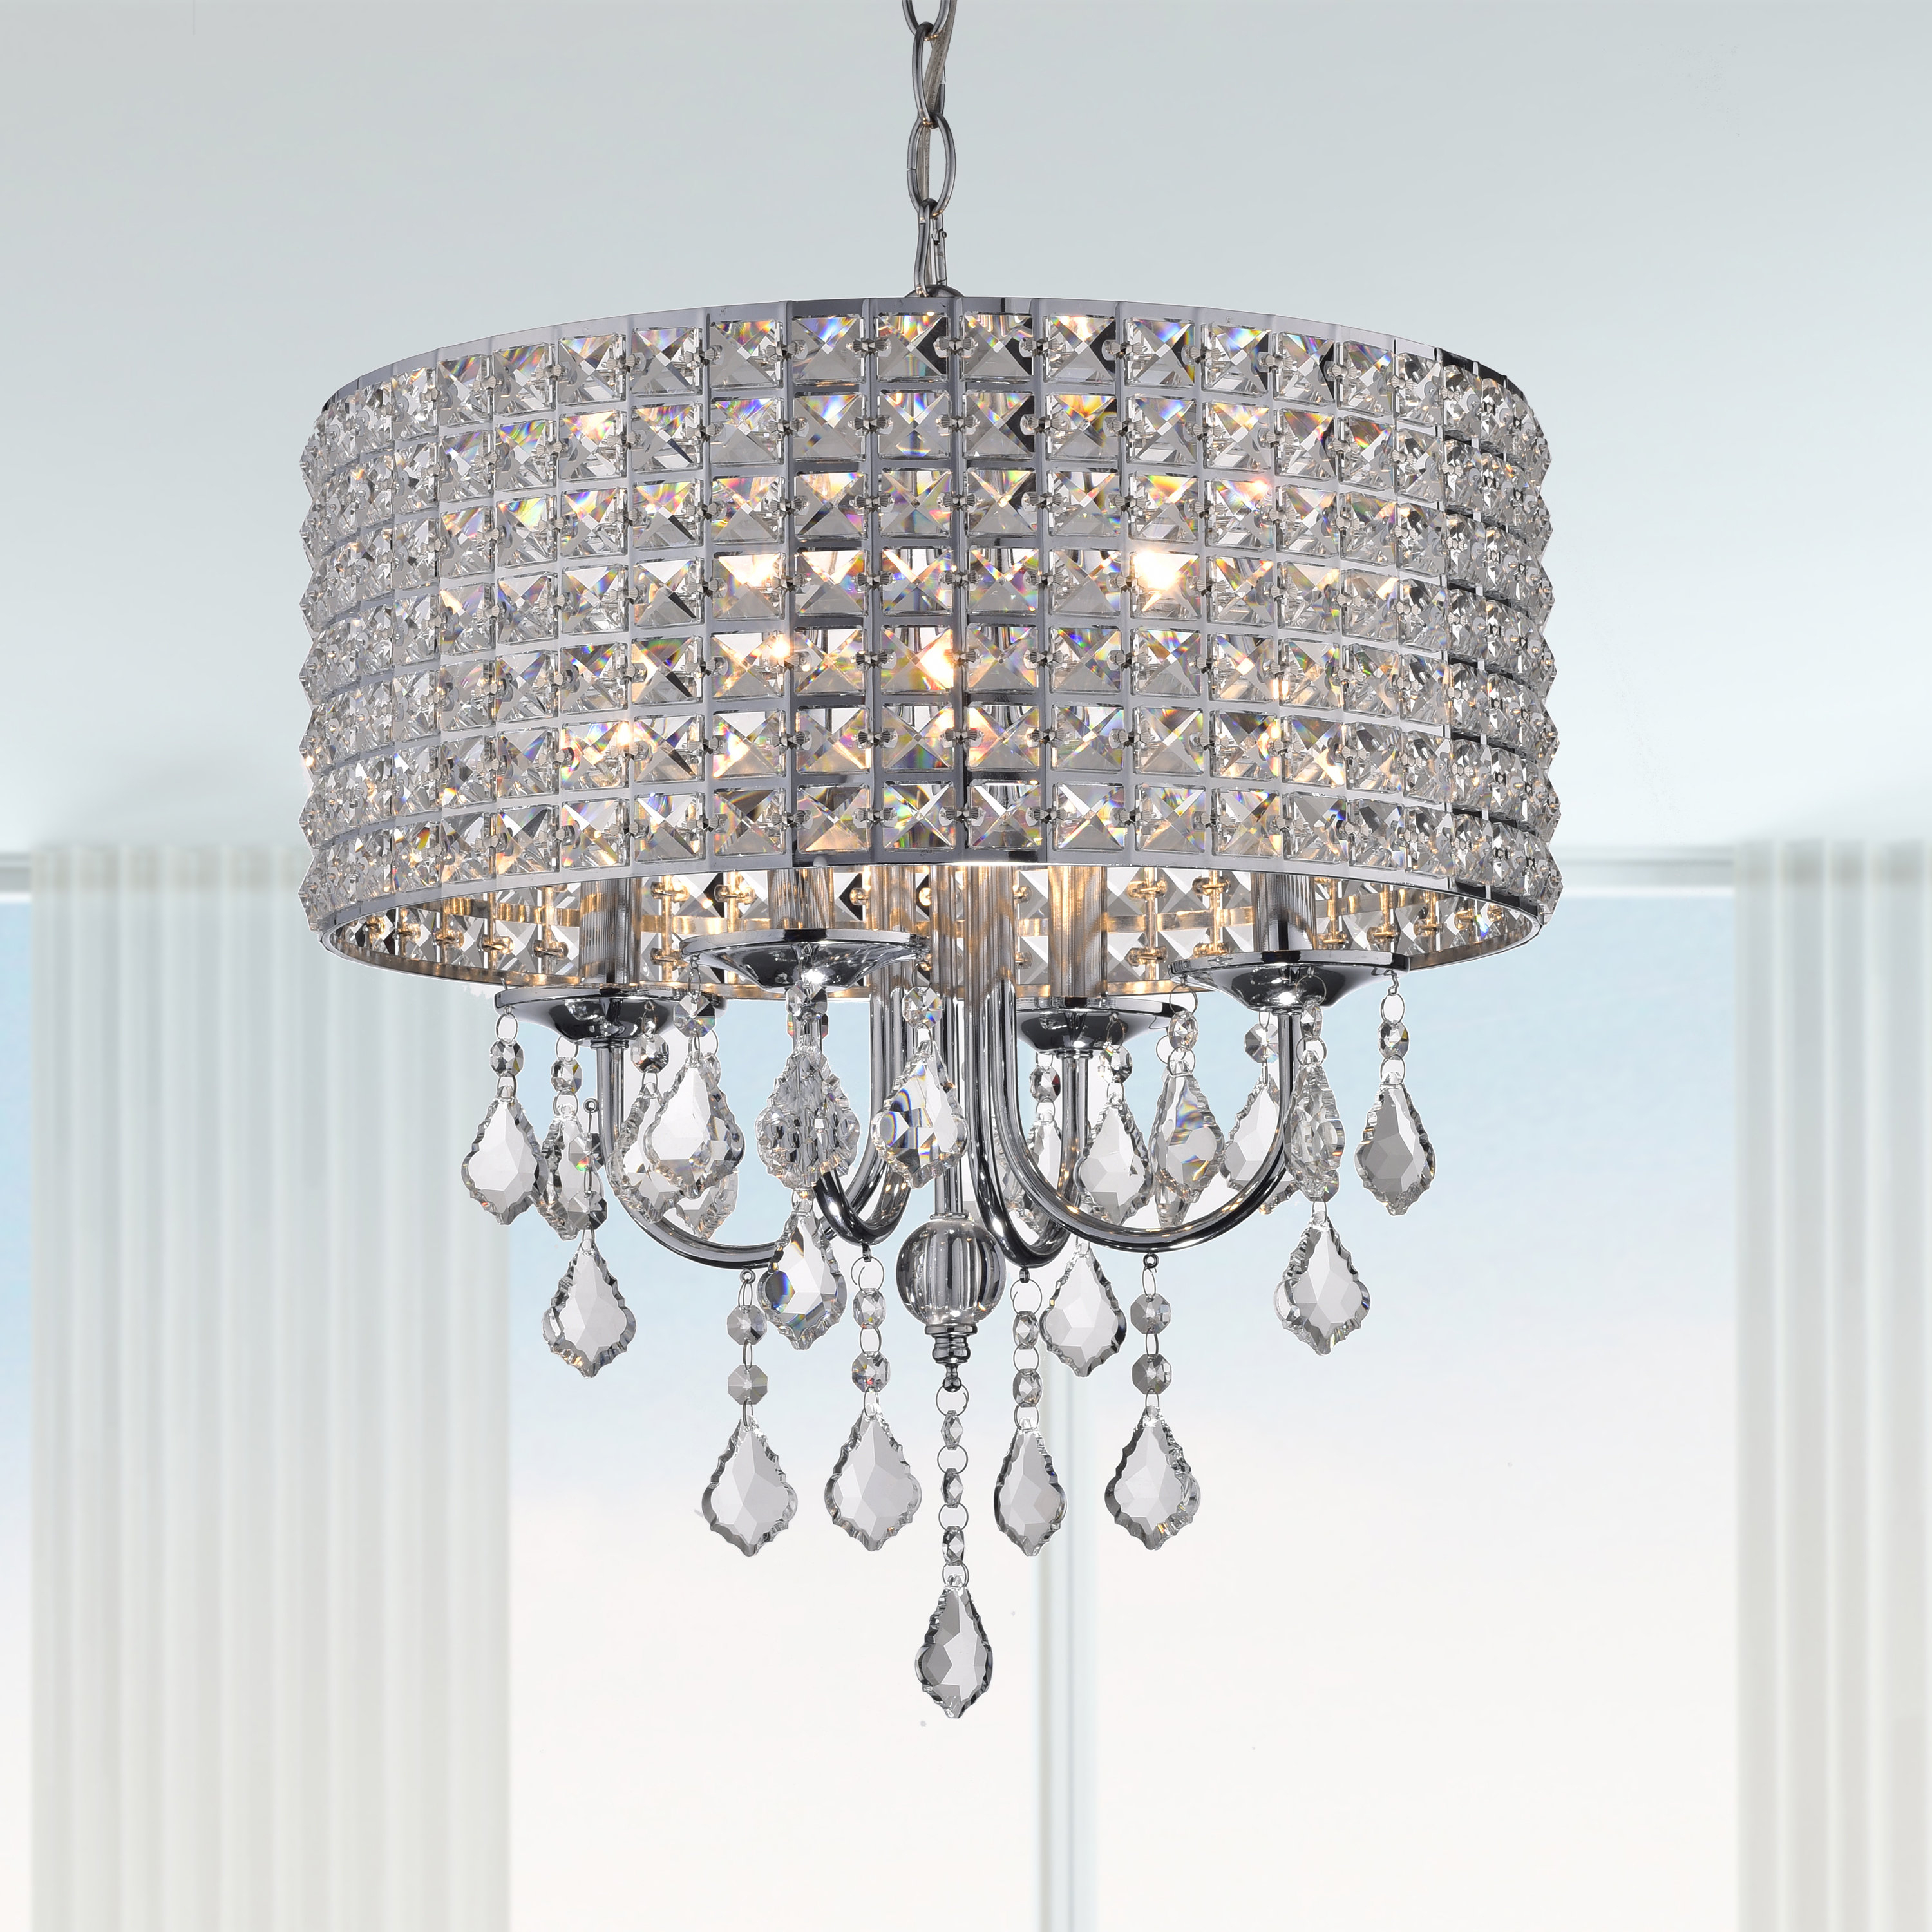 Most Popular Albano 4 Light Crystal Chandelier With Regard To Gisselle 4 Light Drum Chandeliers (View 24 of 25)